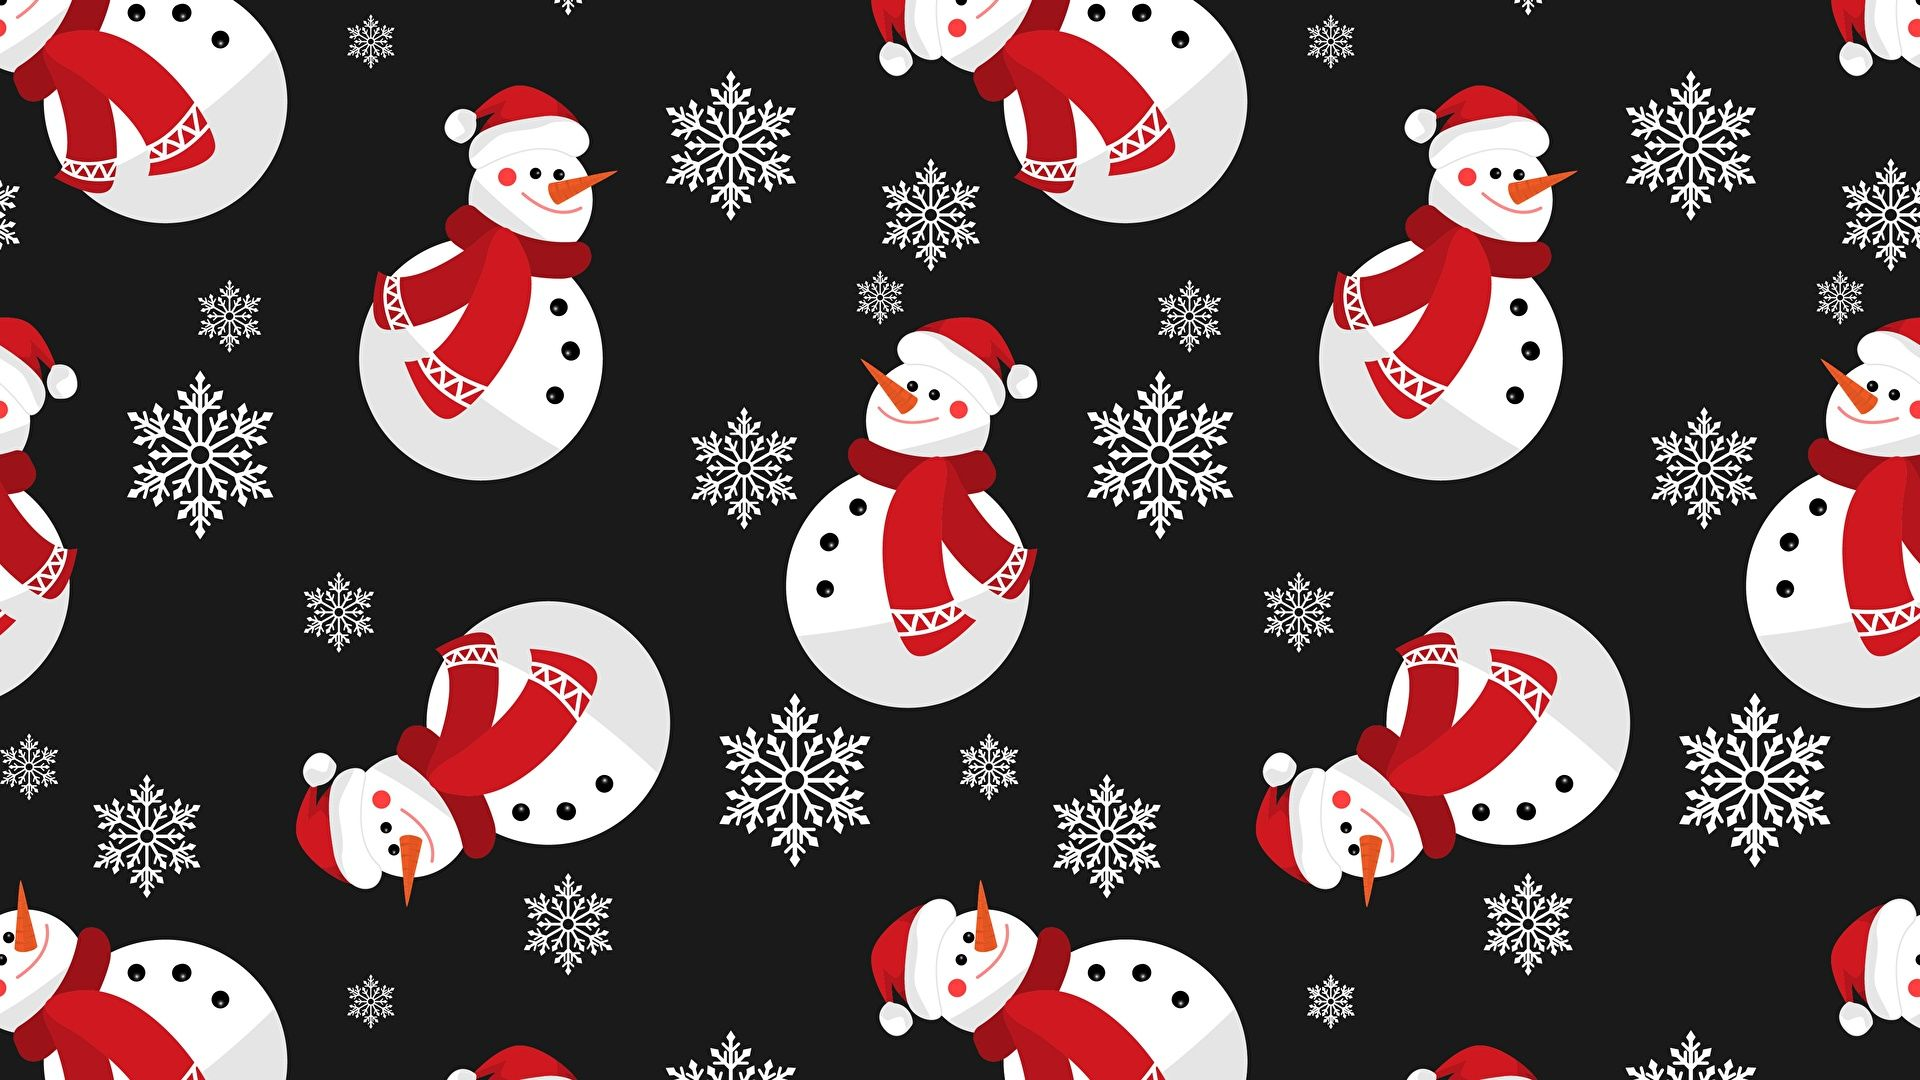 Christmas Scrapbooking download free wallpapers for pc in hd